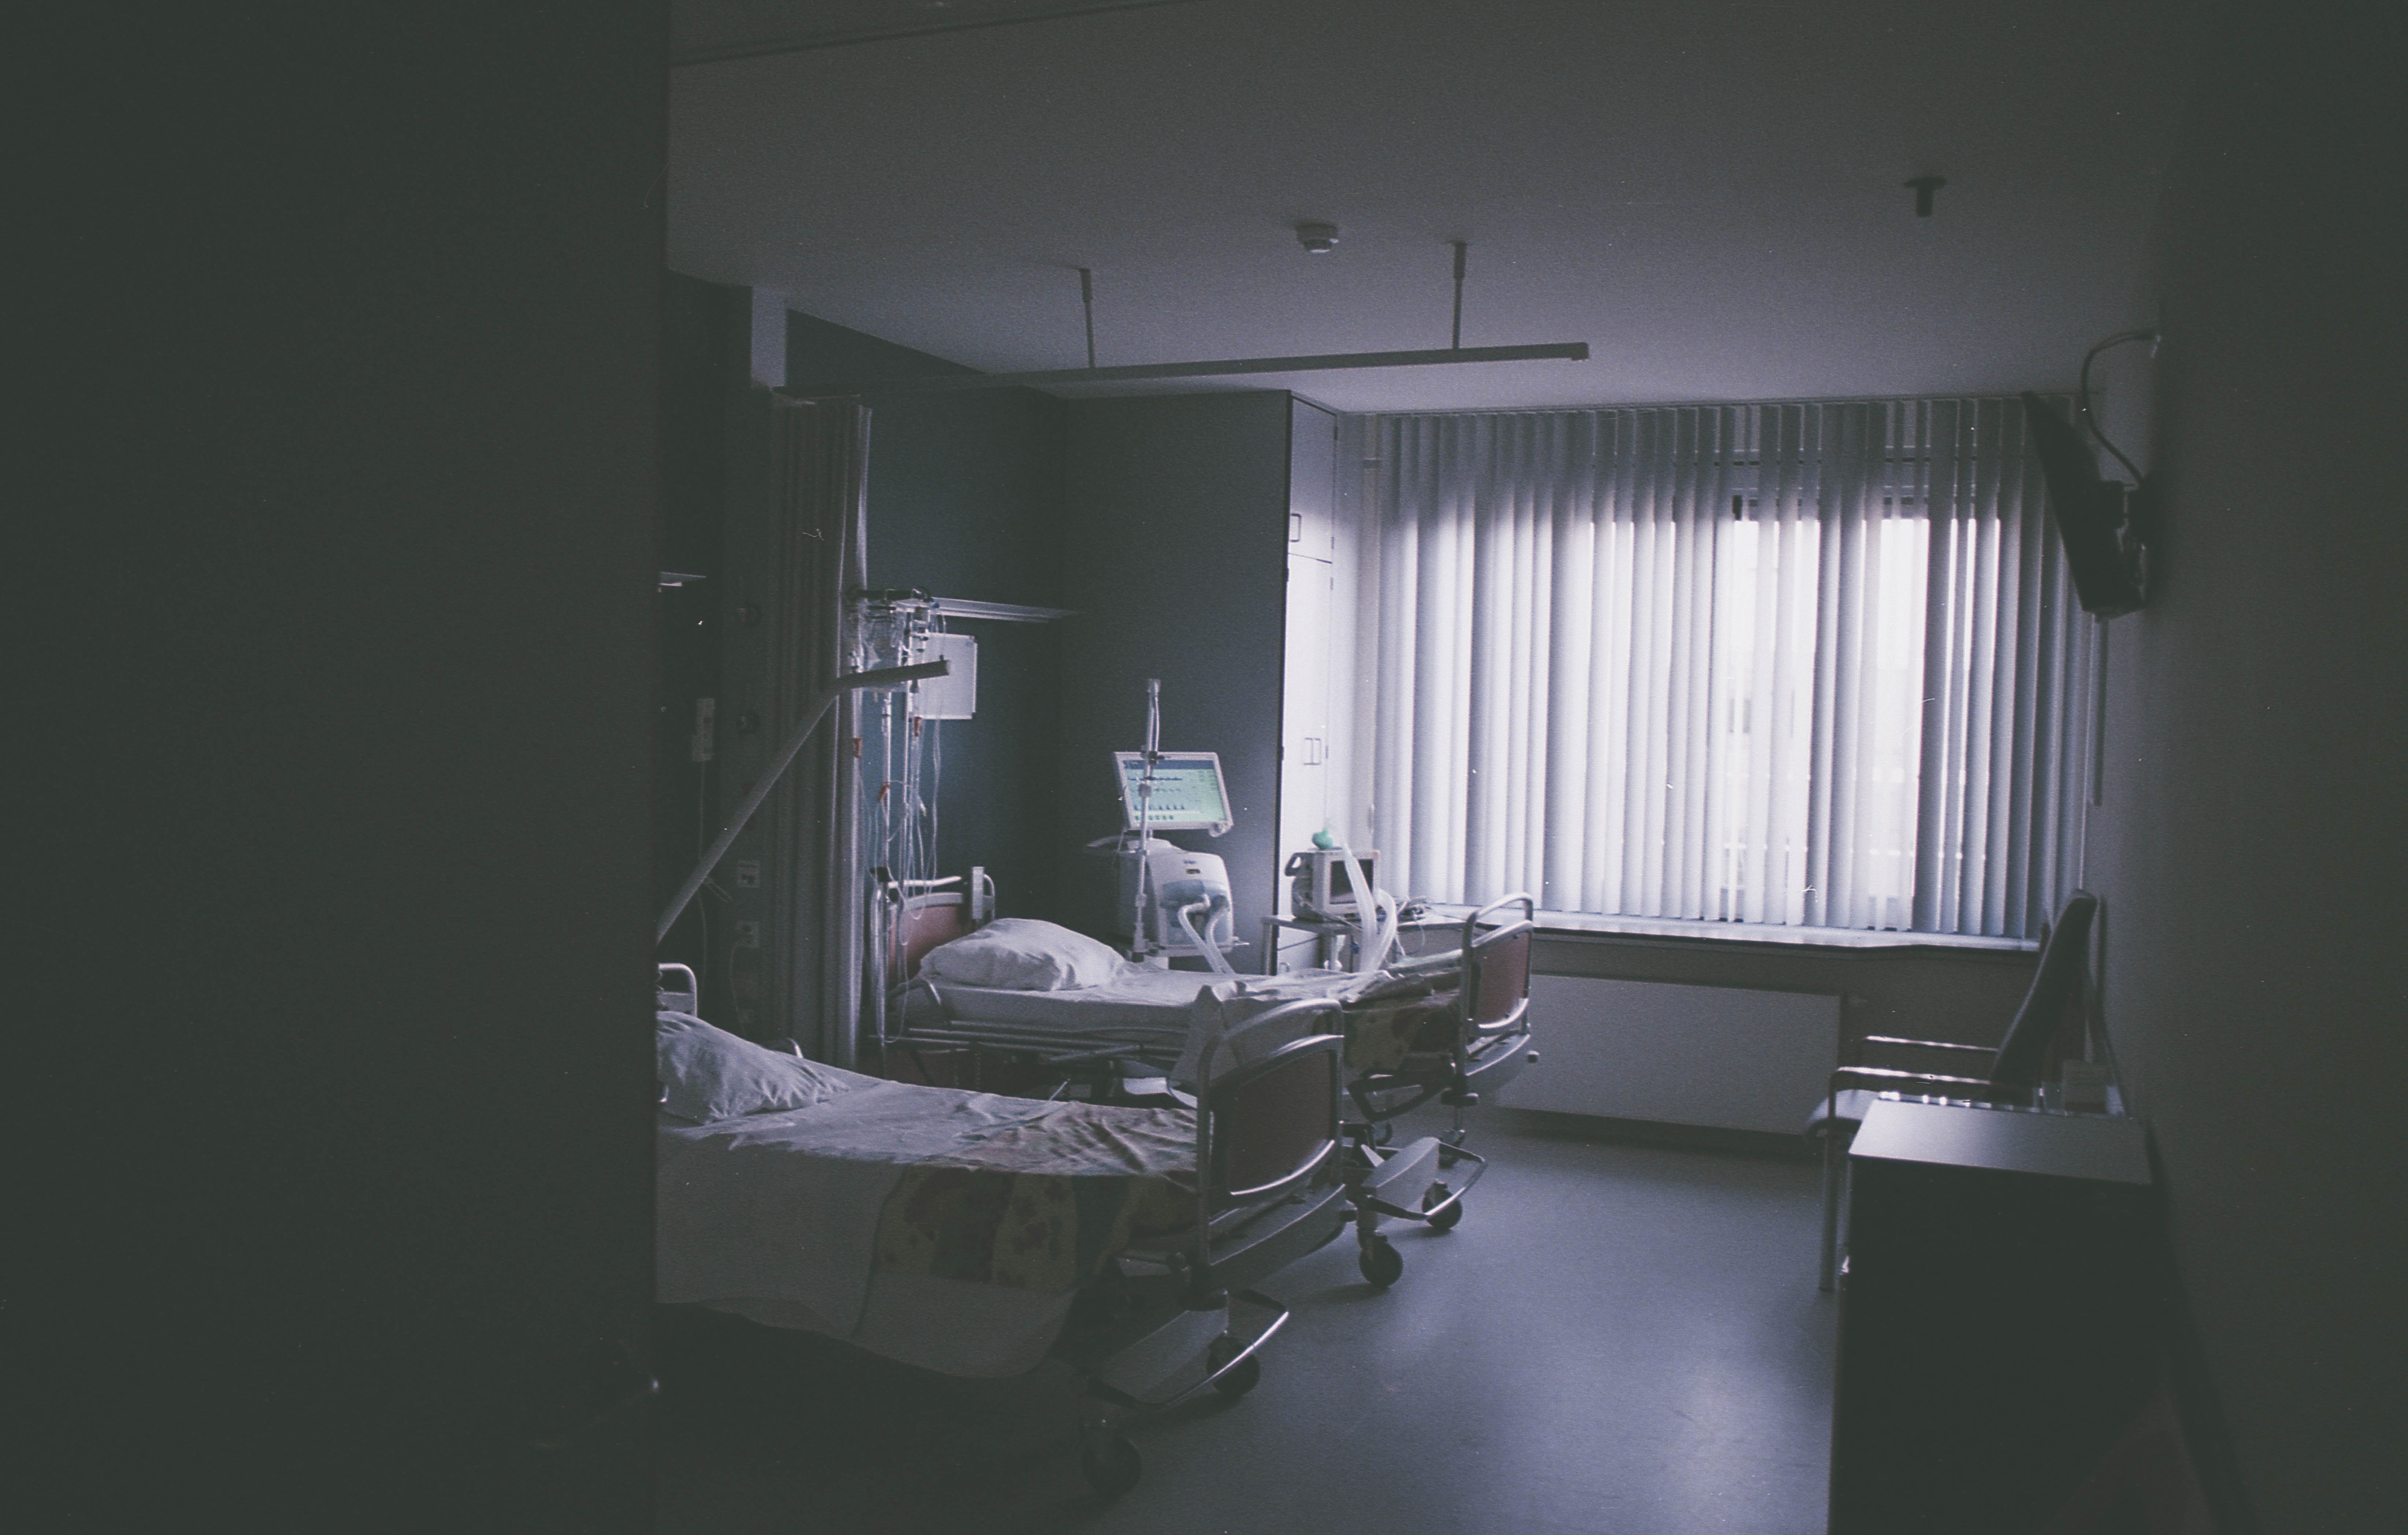 Hospital beds. | Source: Pixabay